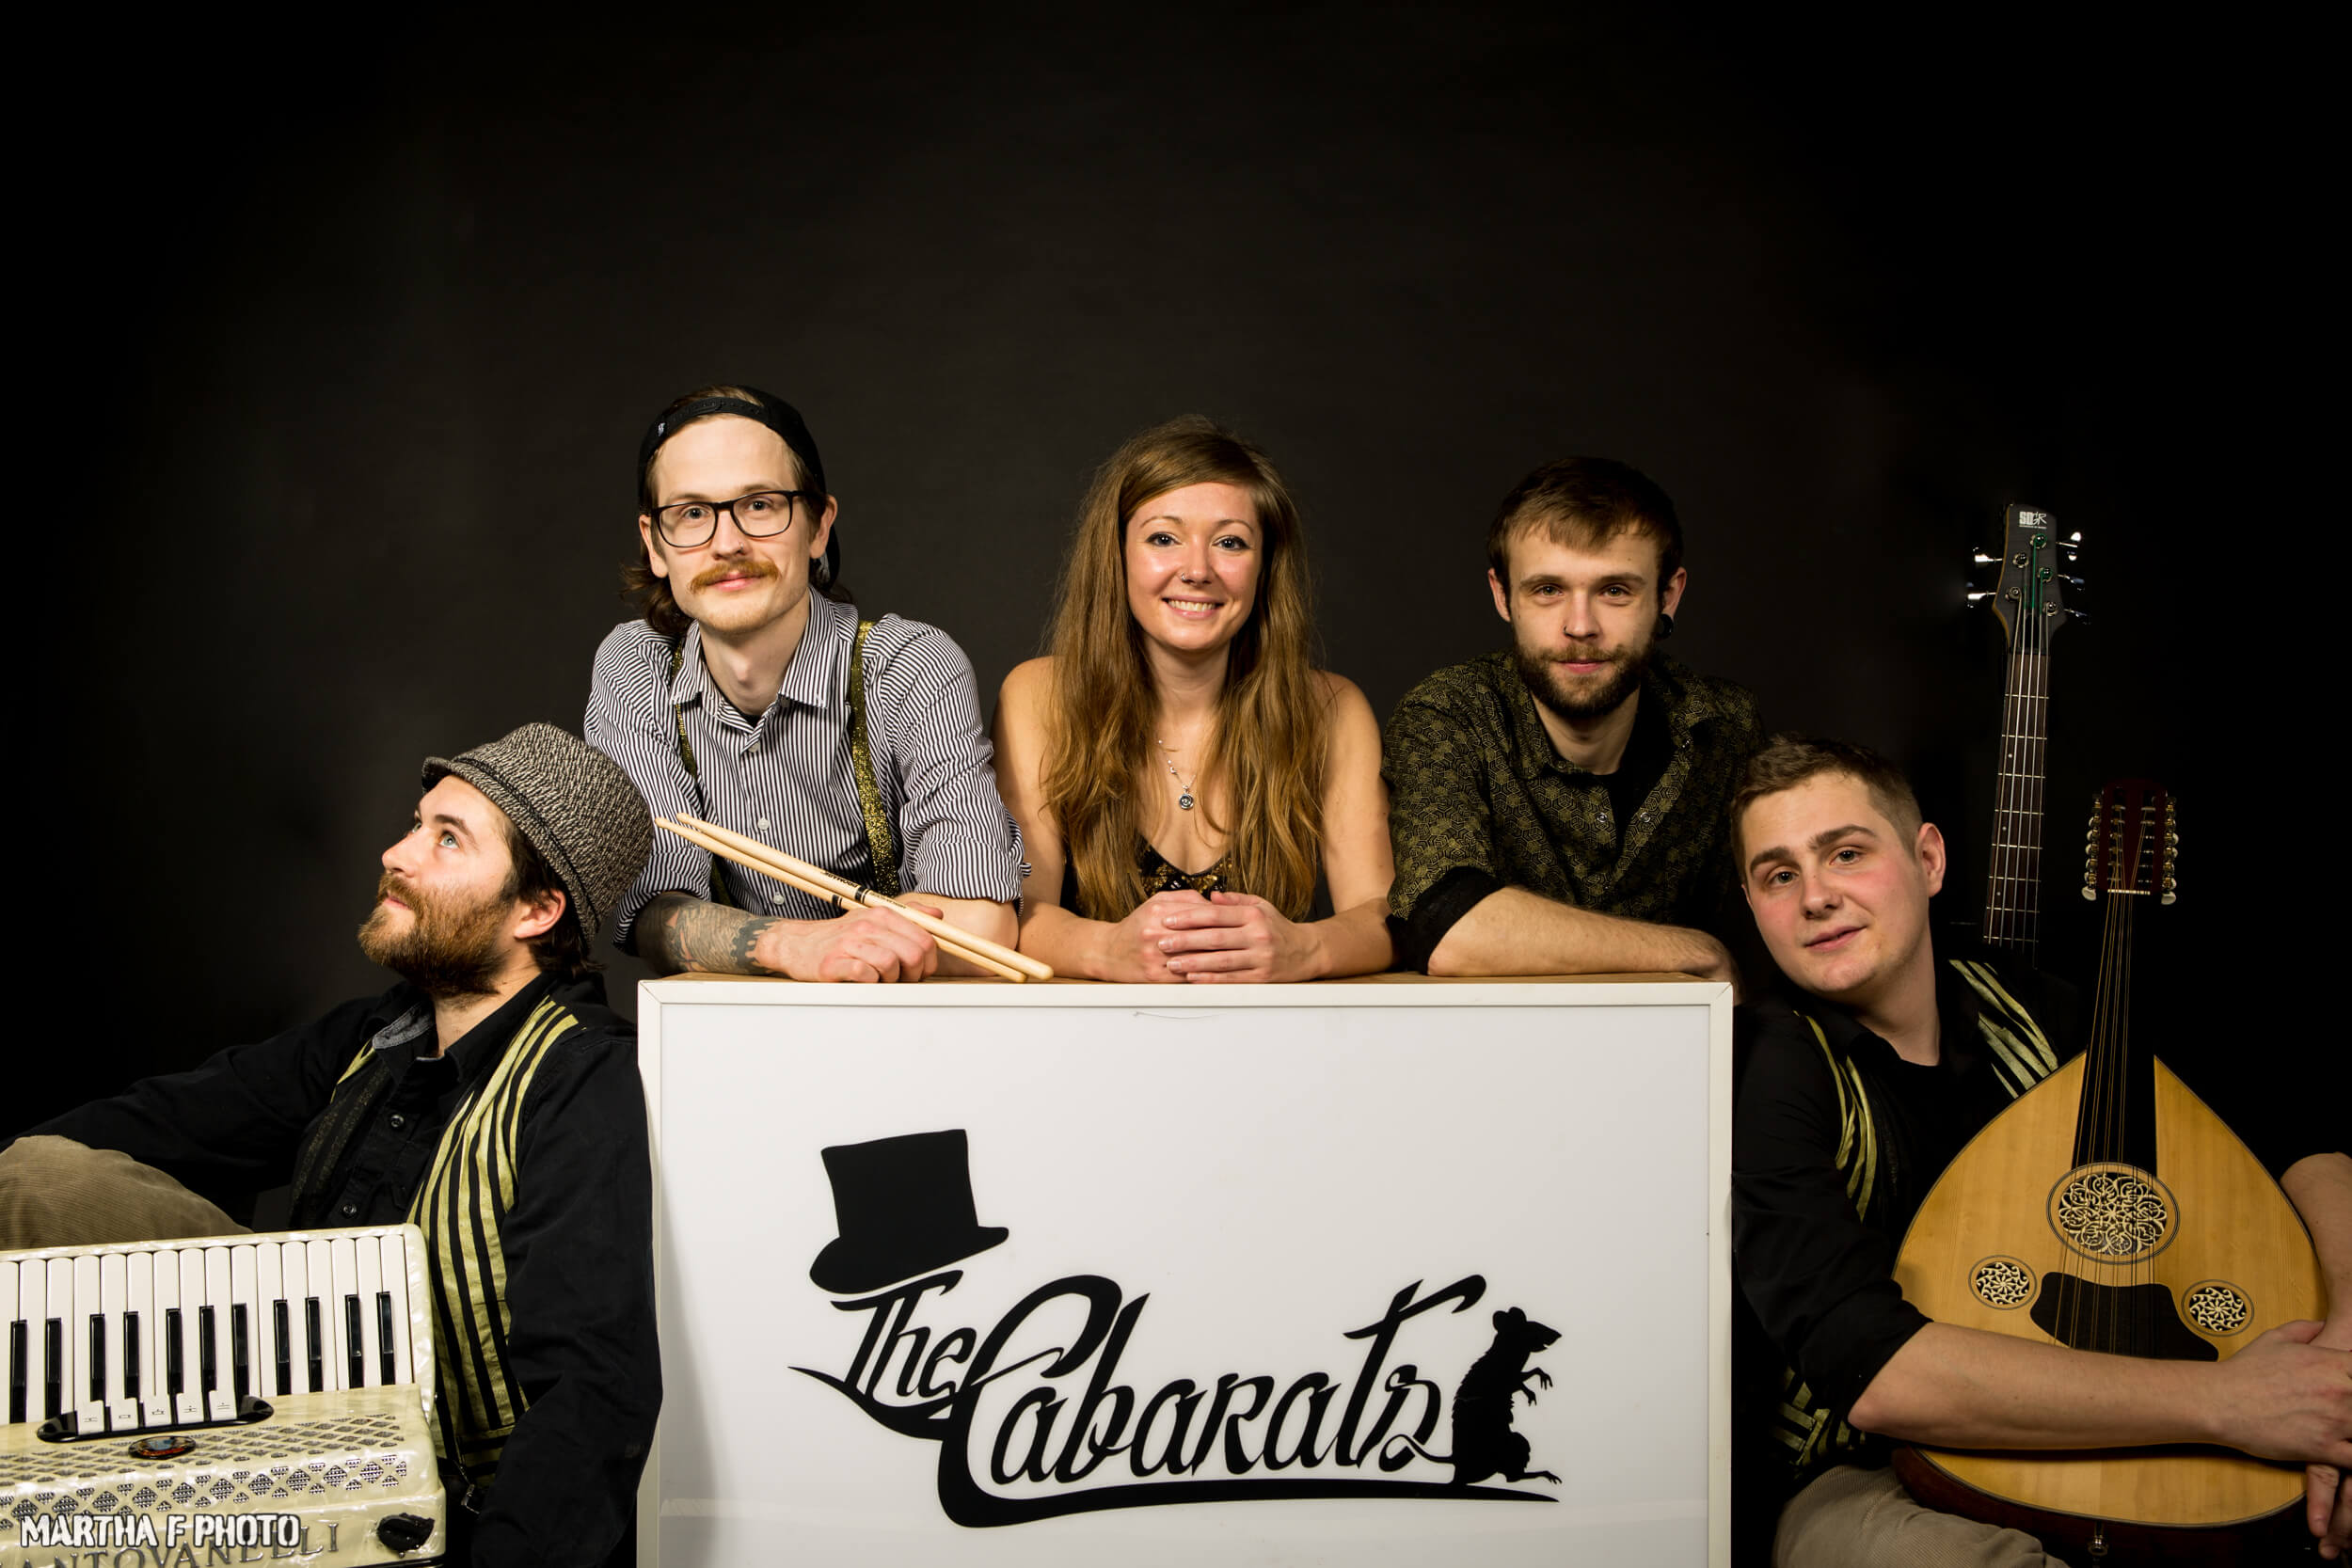 The Cabarats + support from Samantics